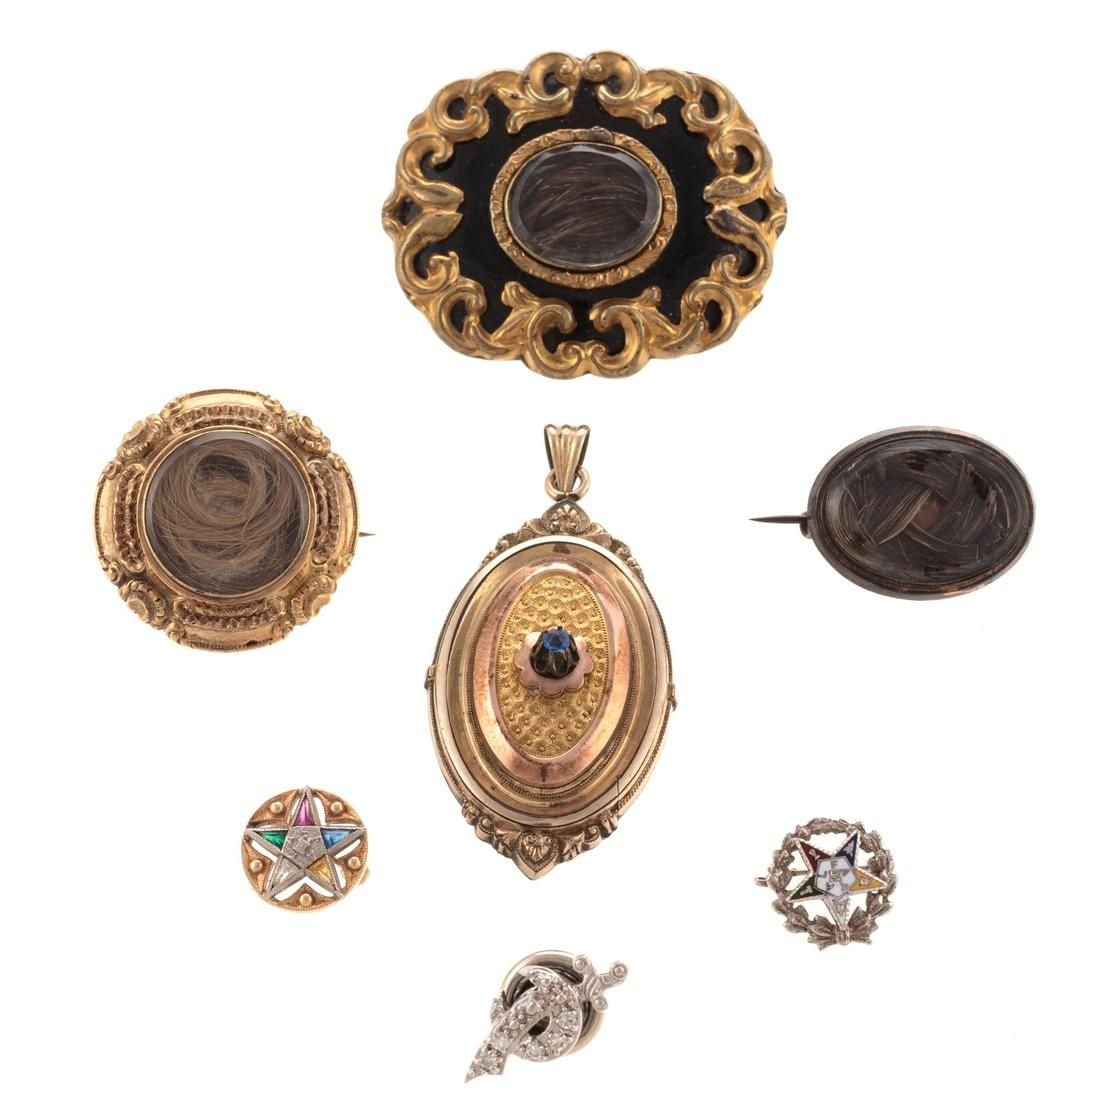 A Collection of Victorian Mourning Jewelry